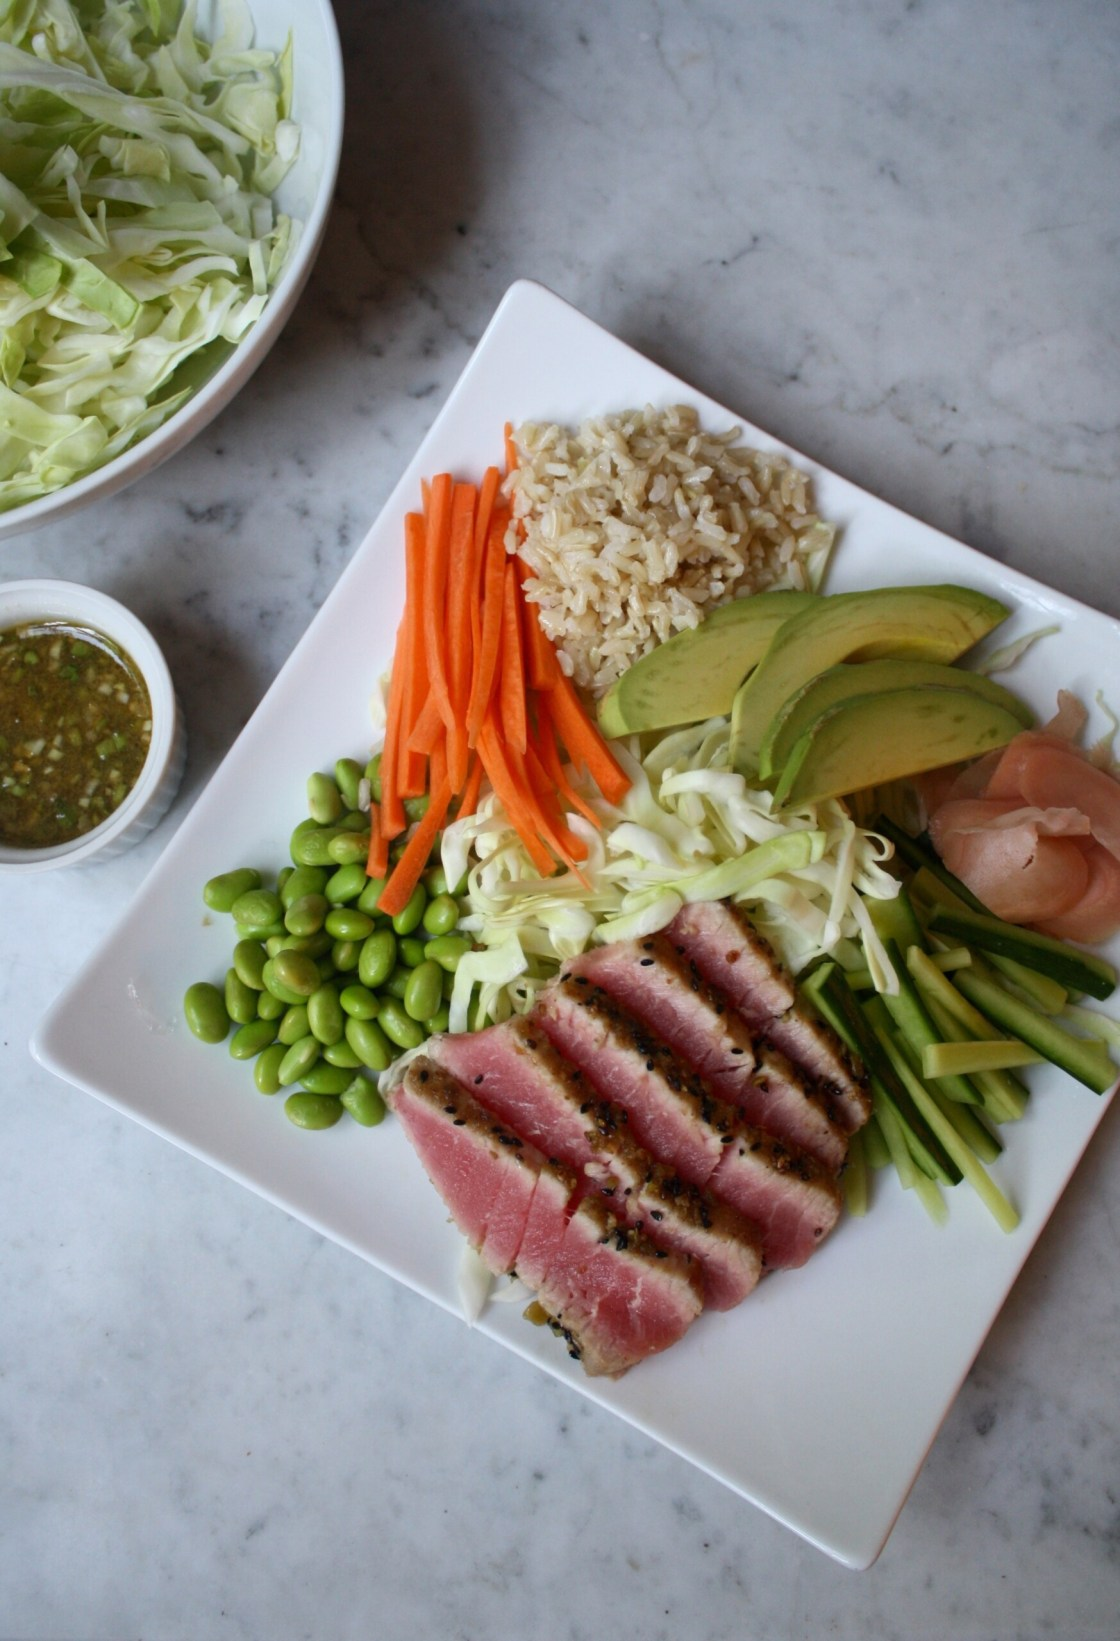 Photograph of Wasabi Crusted Ahi Tuna on a white plate with brown rice, carrots, edamame, cabbage, cucumbers and pickled ginger.